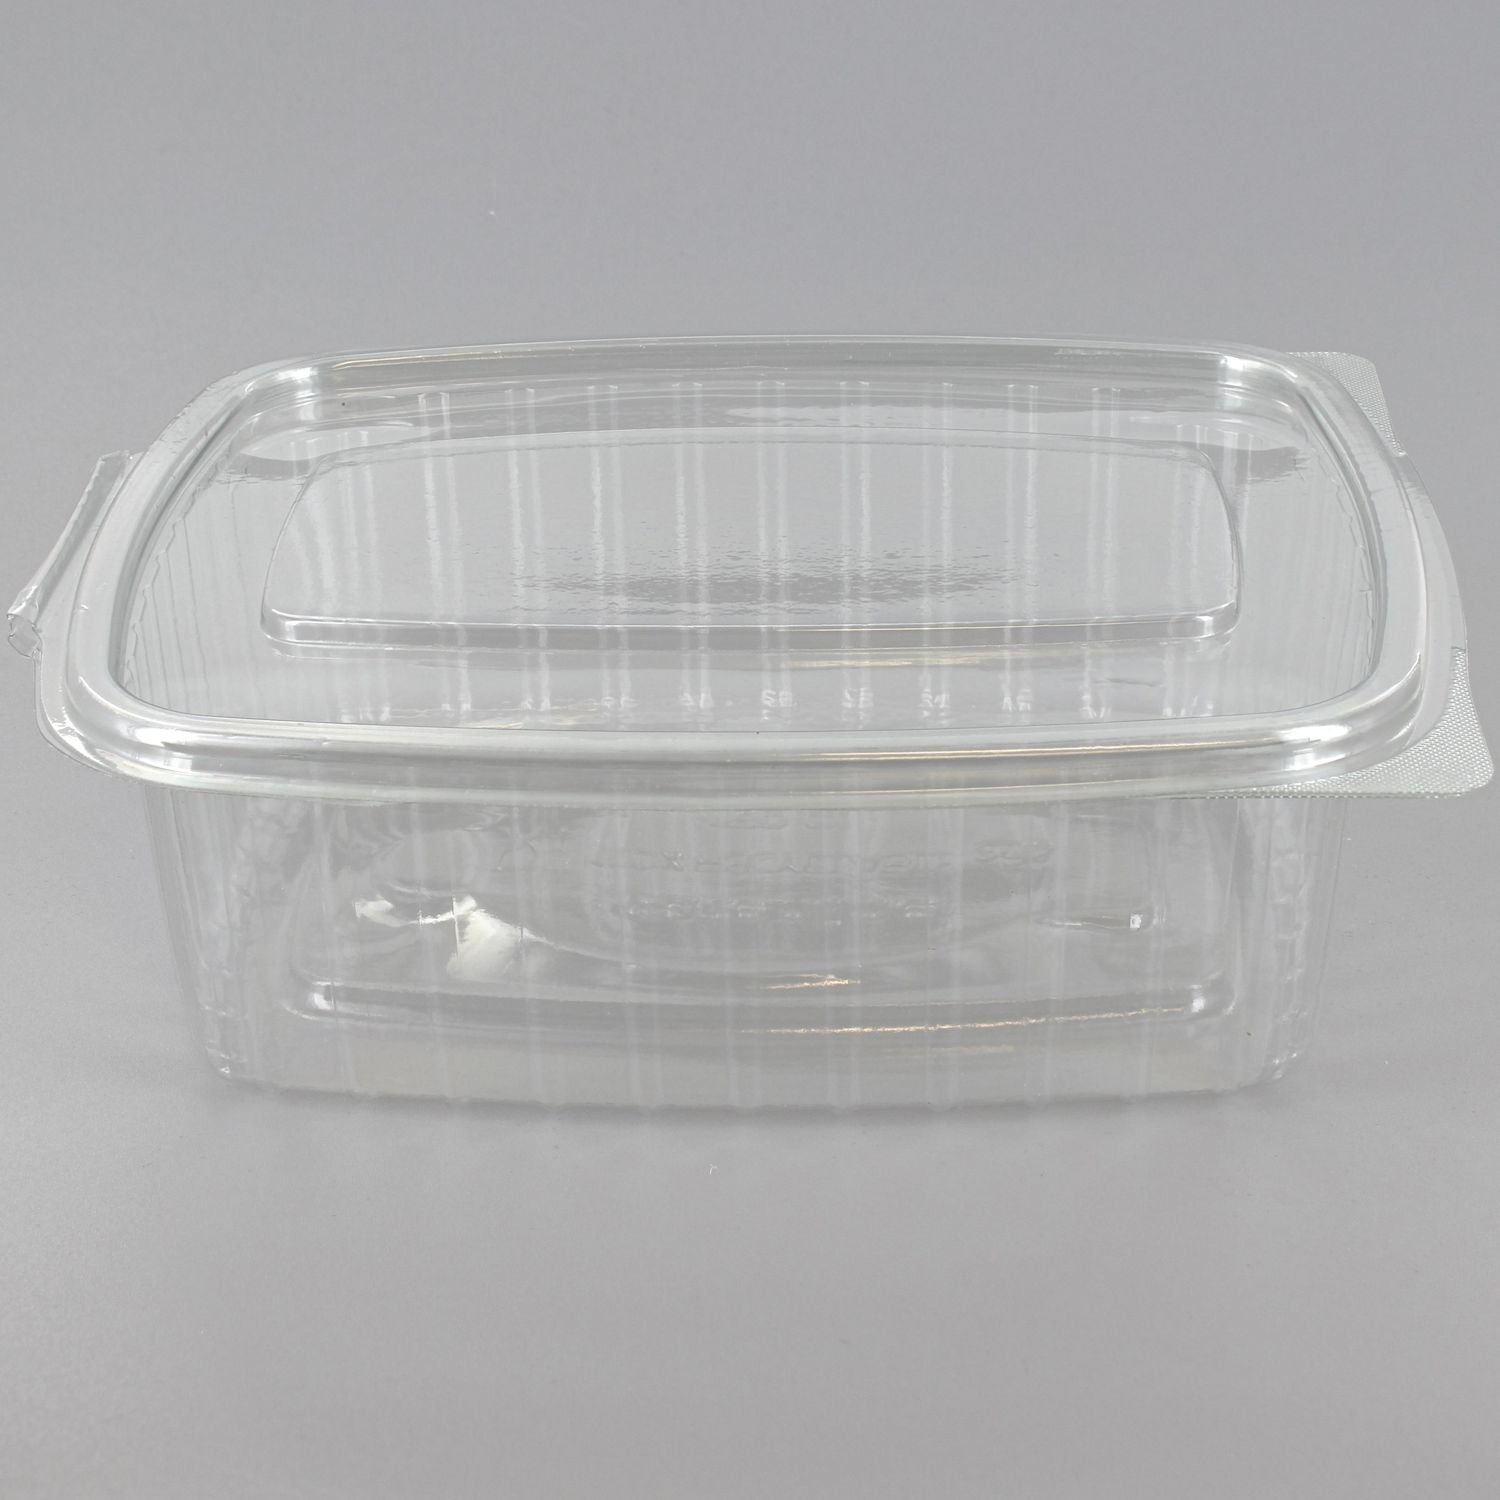 Deli Supplies 100 x 750cc Caterbox Clear Hinged Container Salads Pasta Salad Seafood Salad Box delisupplies